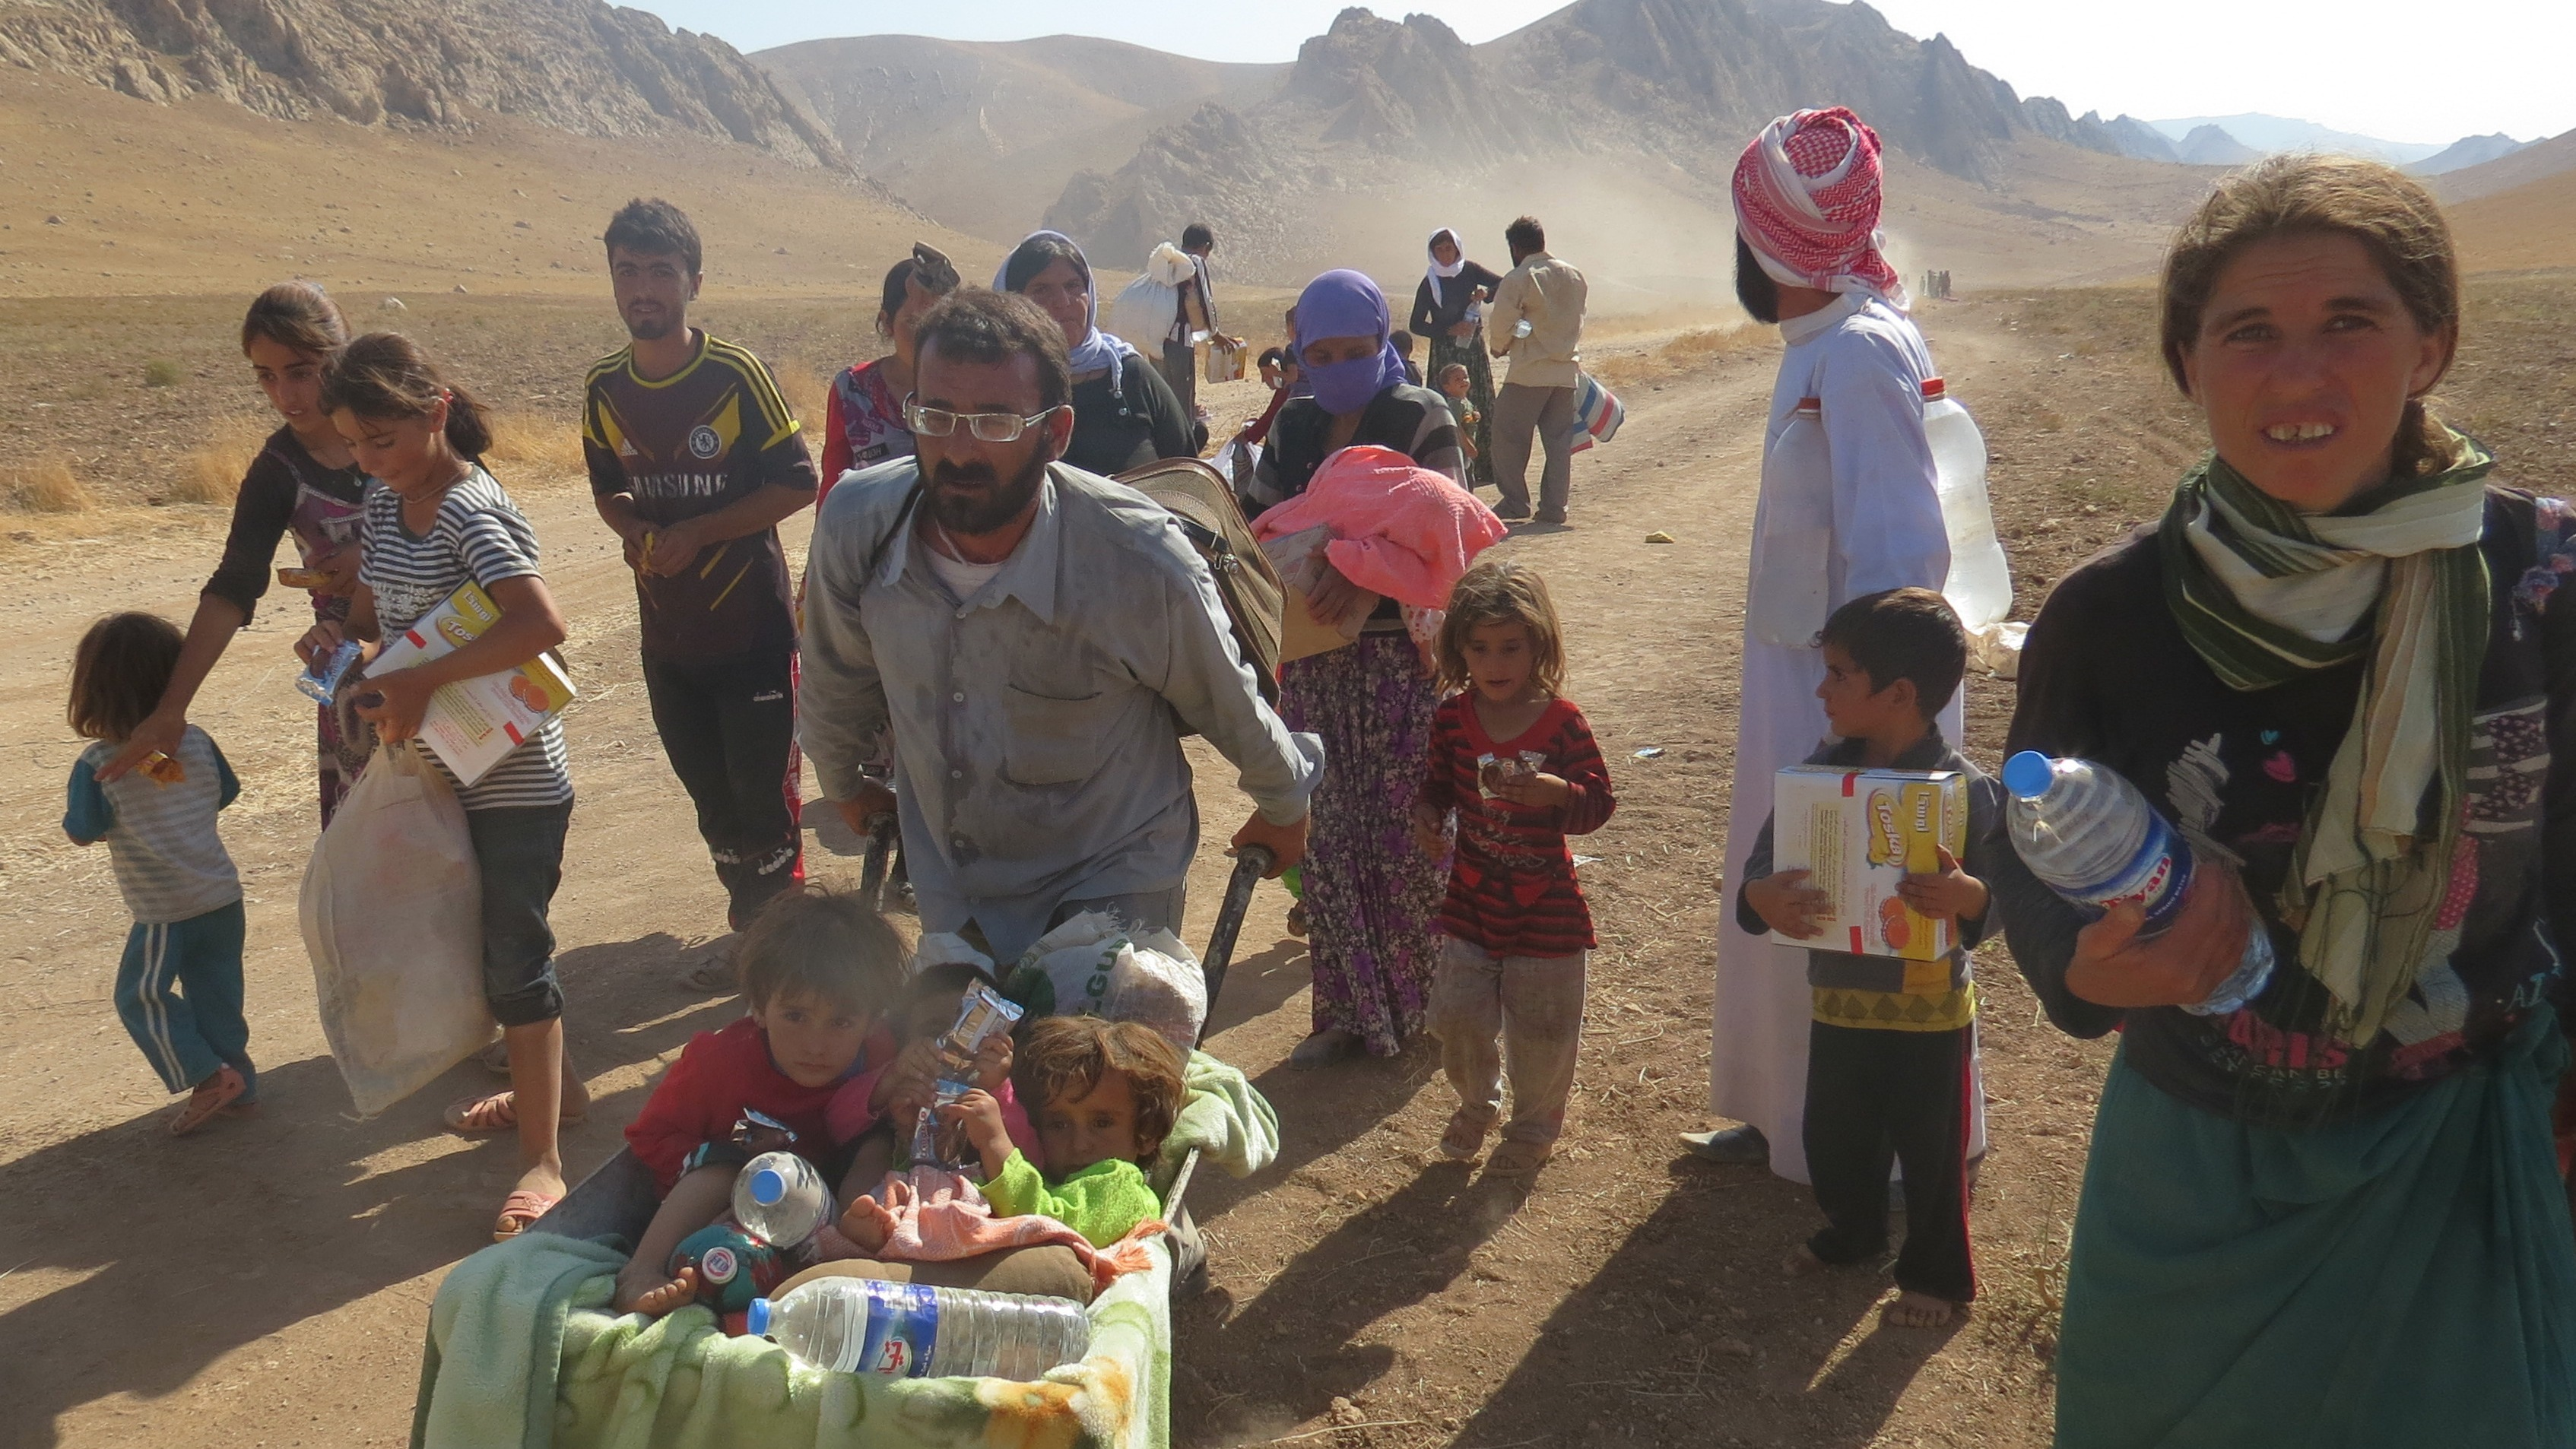 Thousands of Iraqis have fled the Sinjar region following advances by the group calling themselves the Islamic State (ISIS).